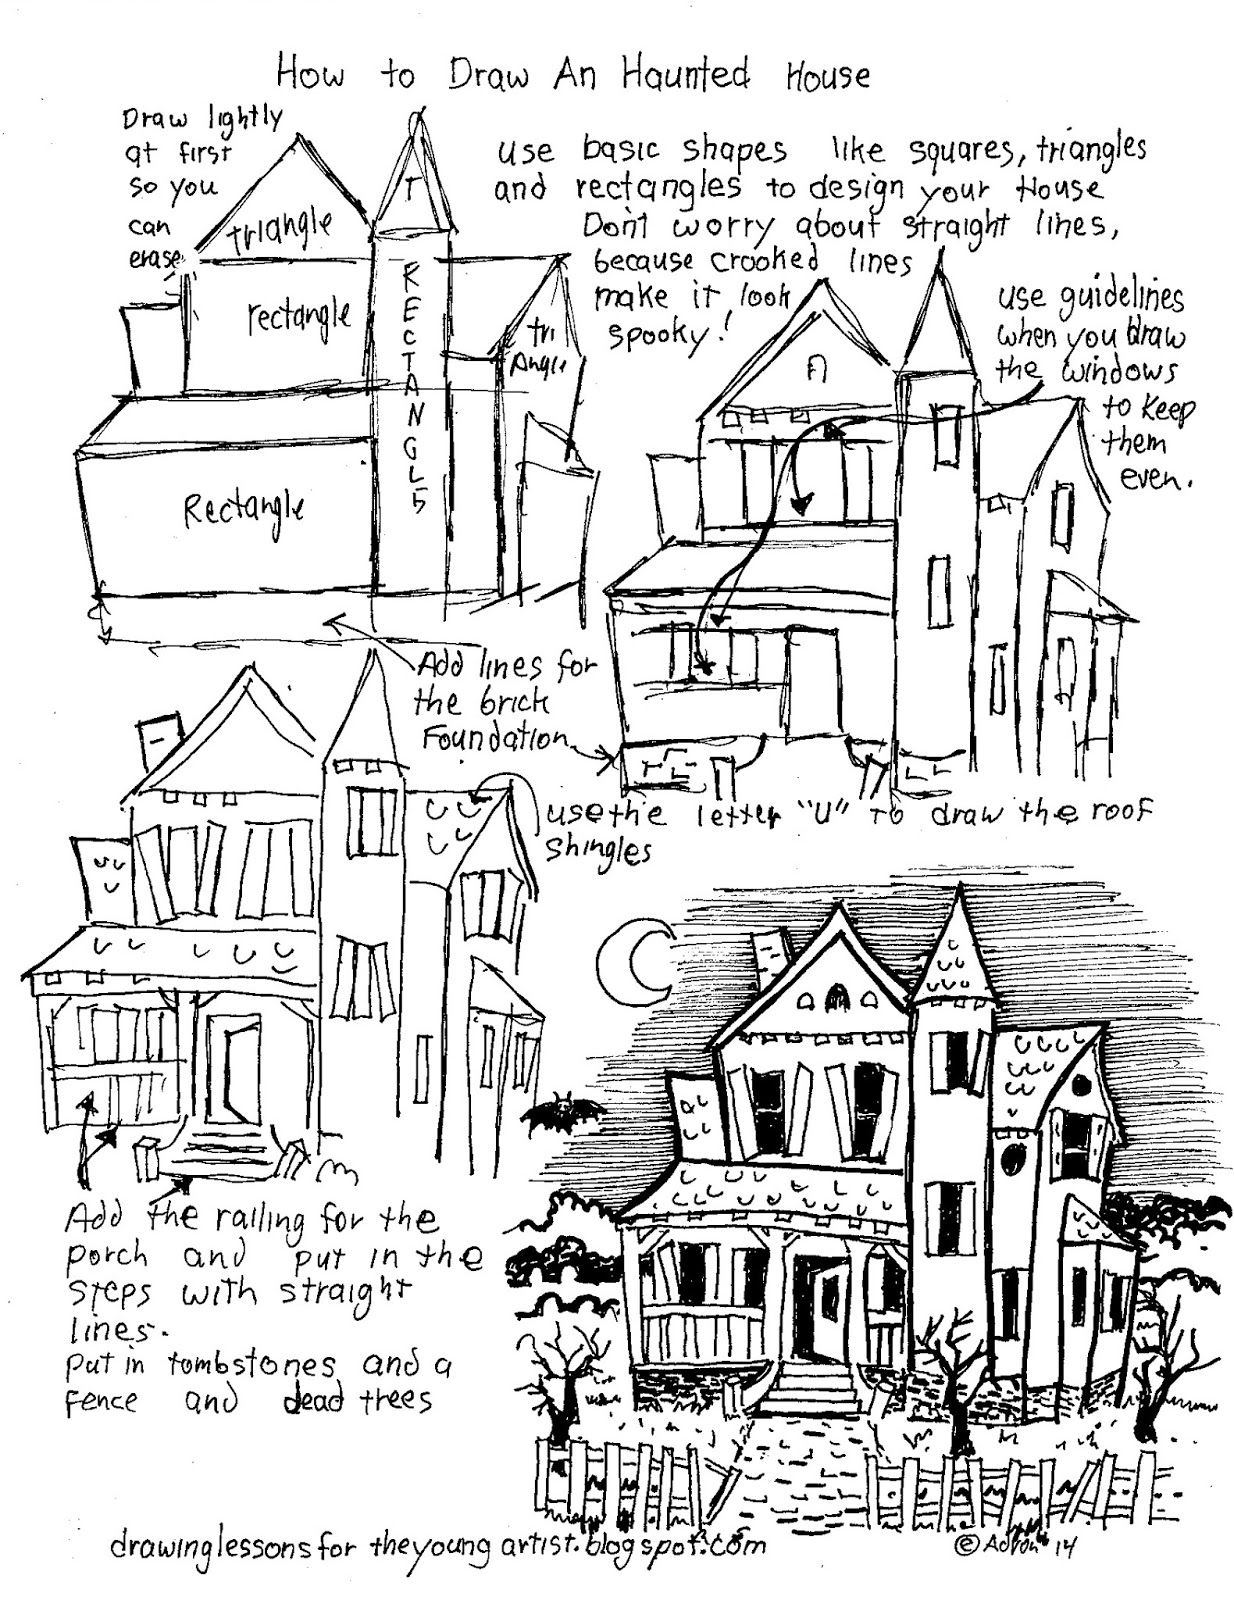 How To Draw Worksheets For The Young Artist: How To Draw A Haunted House  Free Worksheet